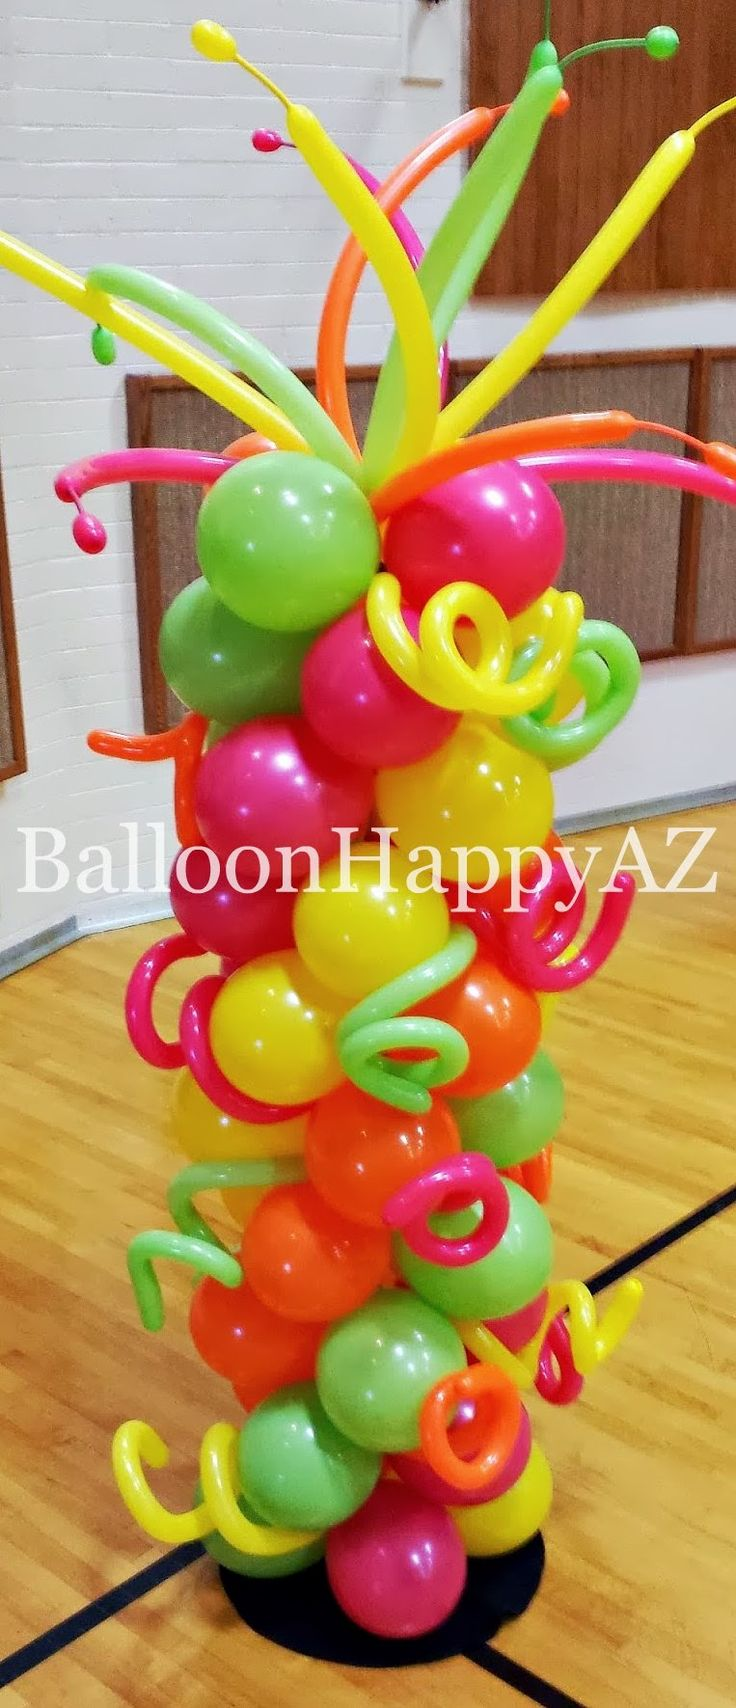 Balloon decor ideas - reminds me of a Dale Chihuly glass sculpture